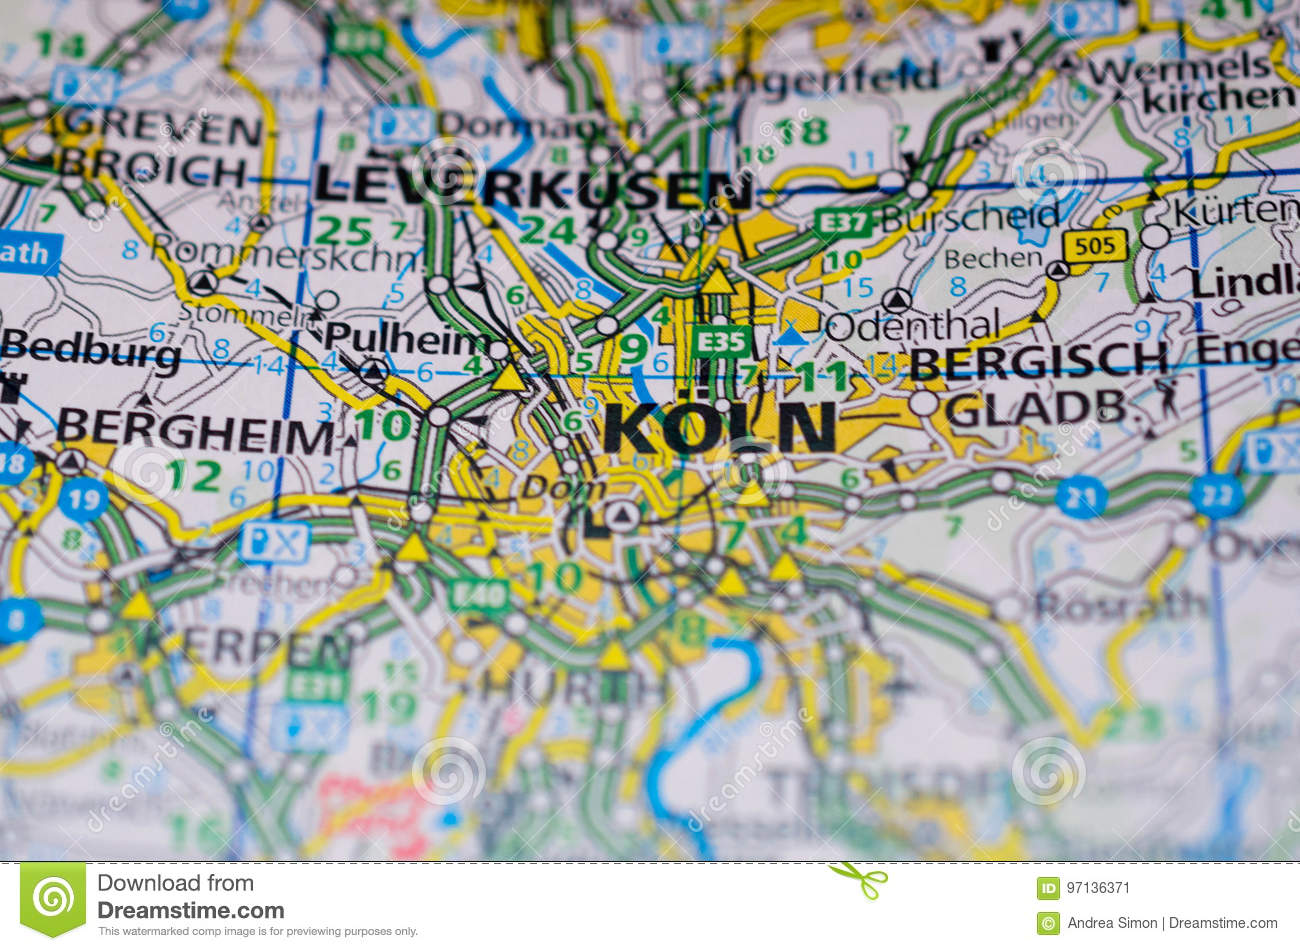 Cologne On Map Of Germany.Cologne On Map Stock Image Image Of Transport Street 97136371